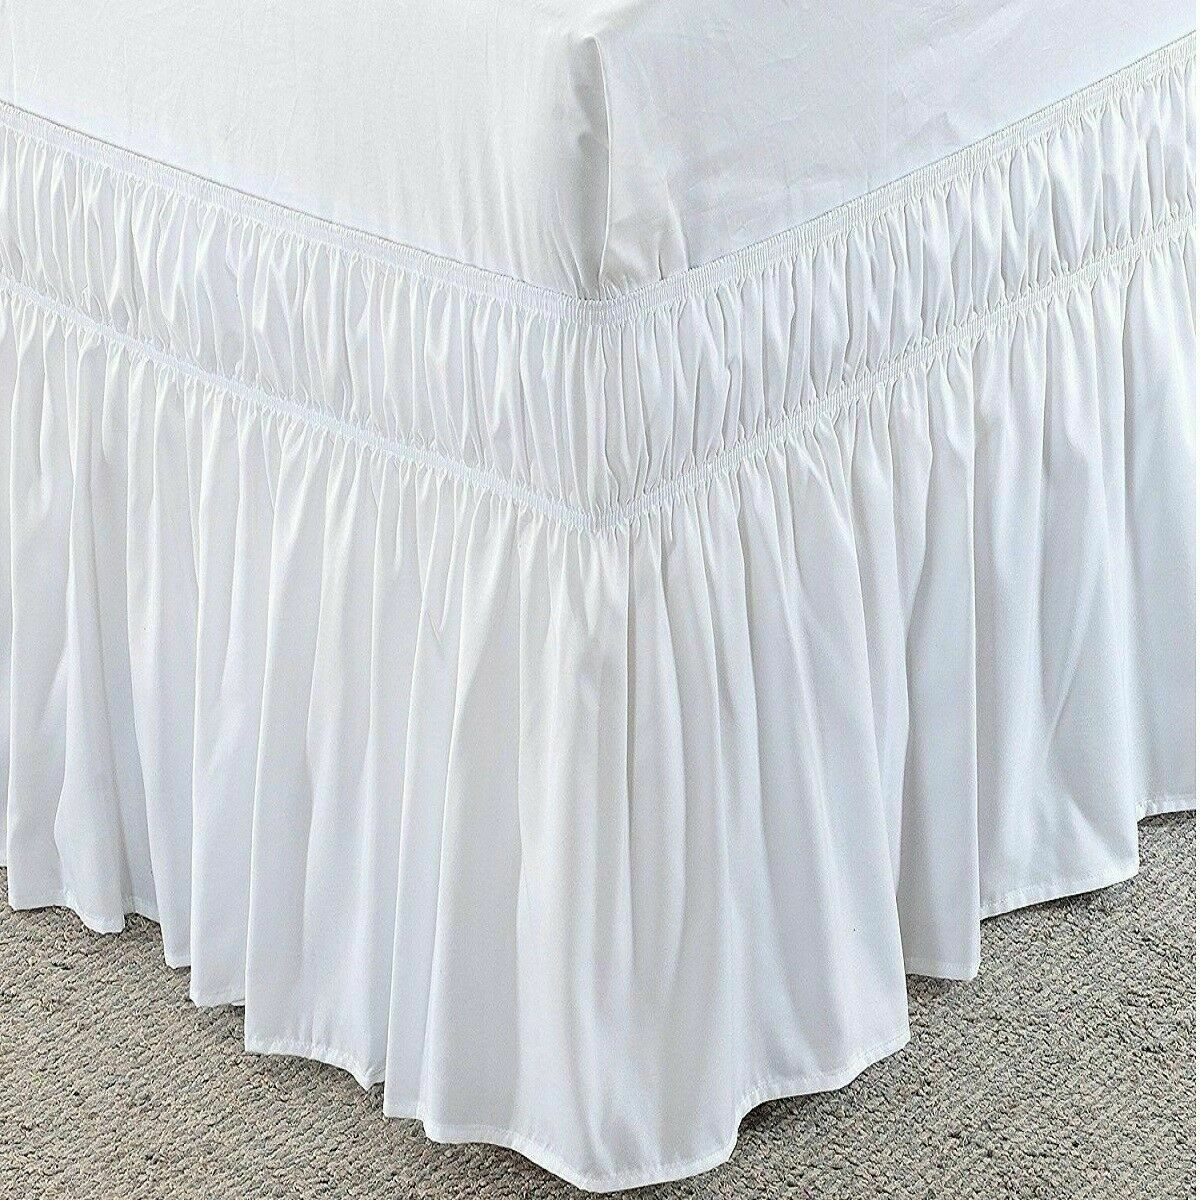 Solid White 400 TC Cotton Wrap Around Ruffle Bed Skirt All S